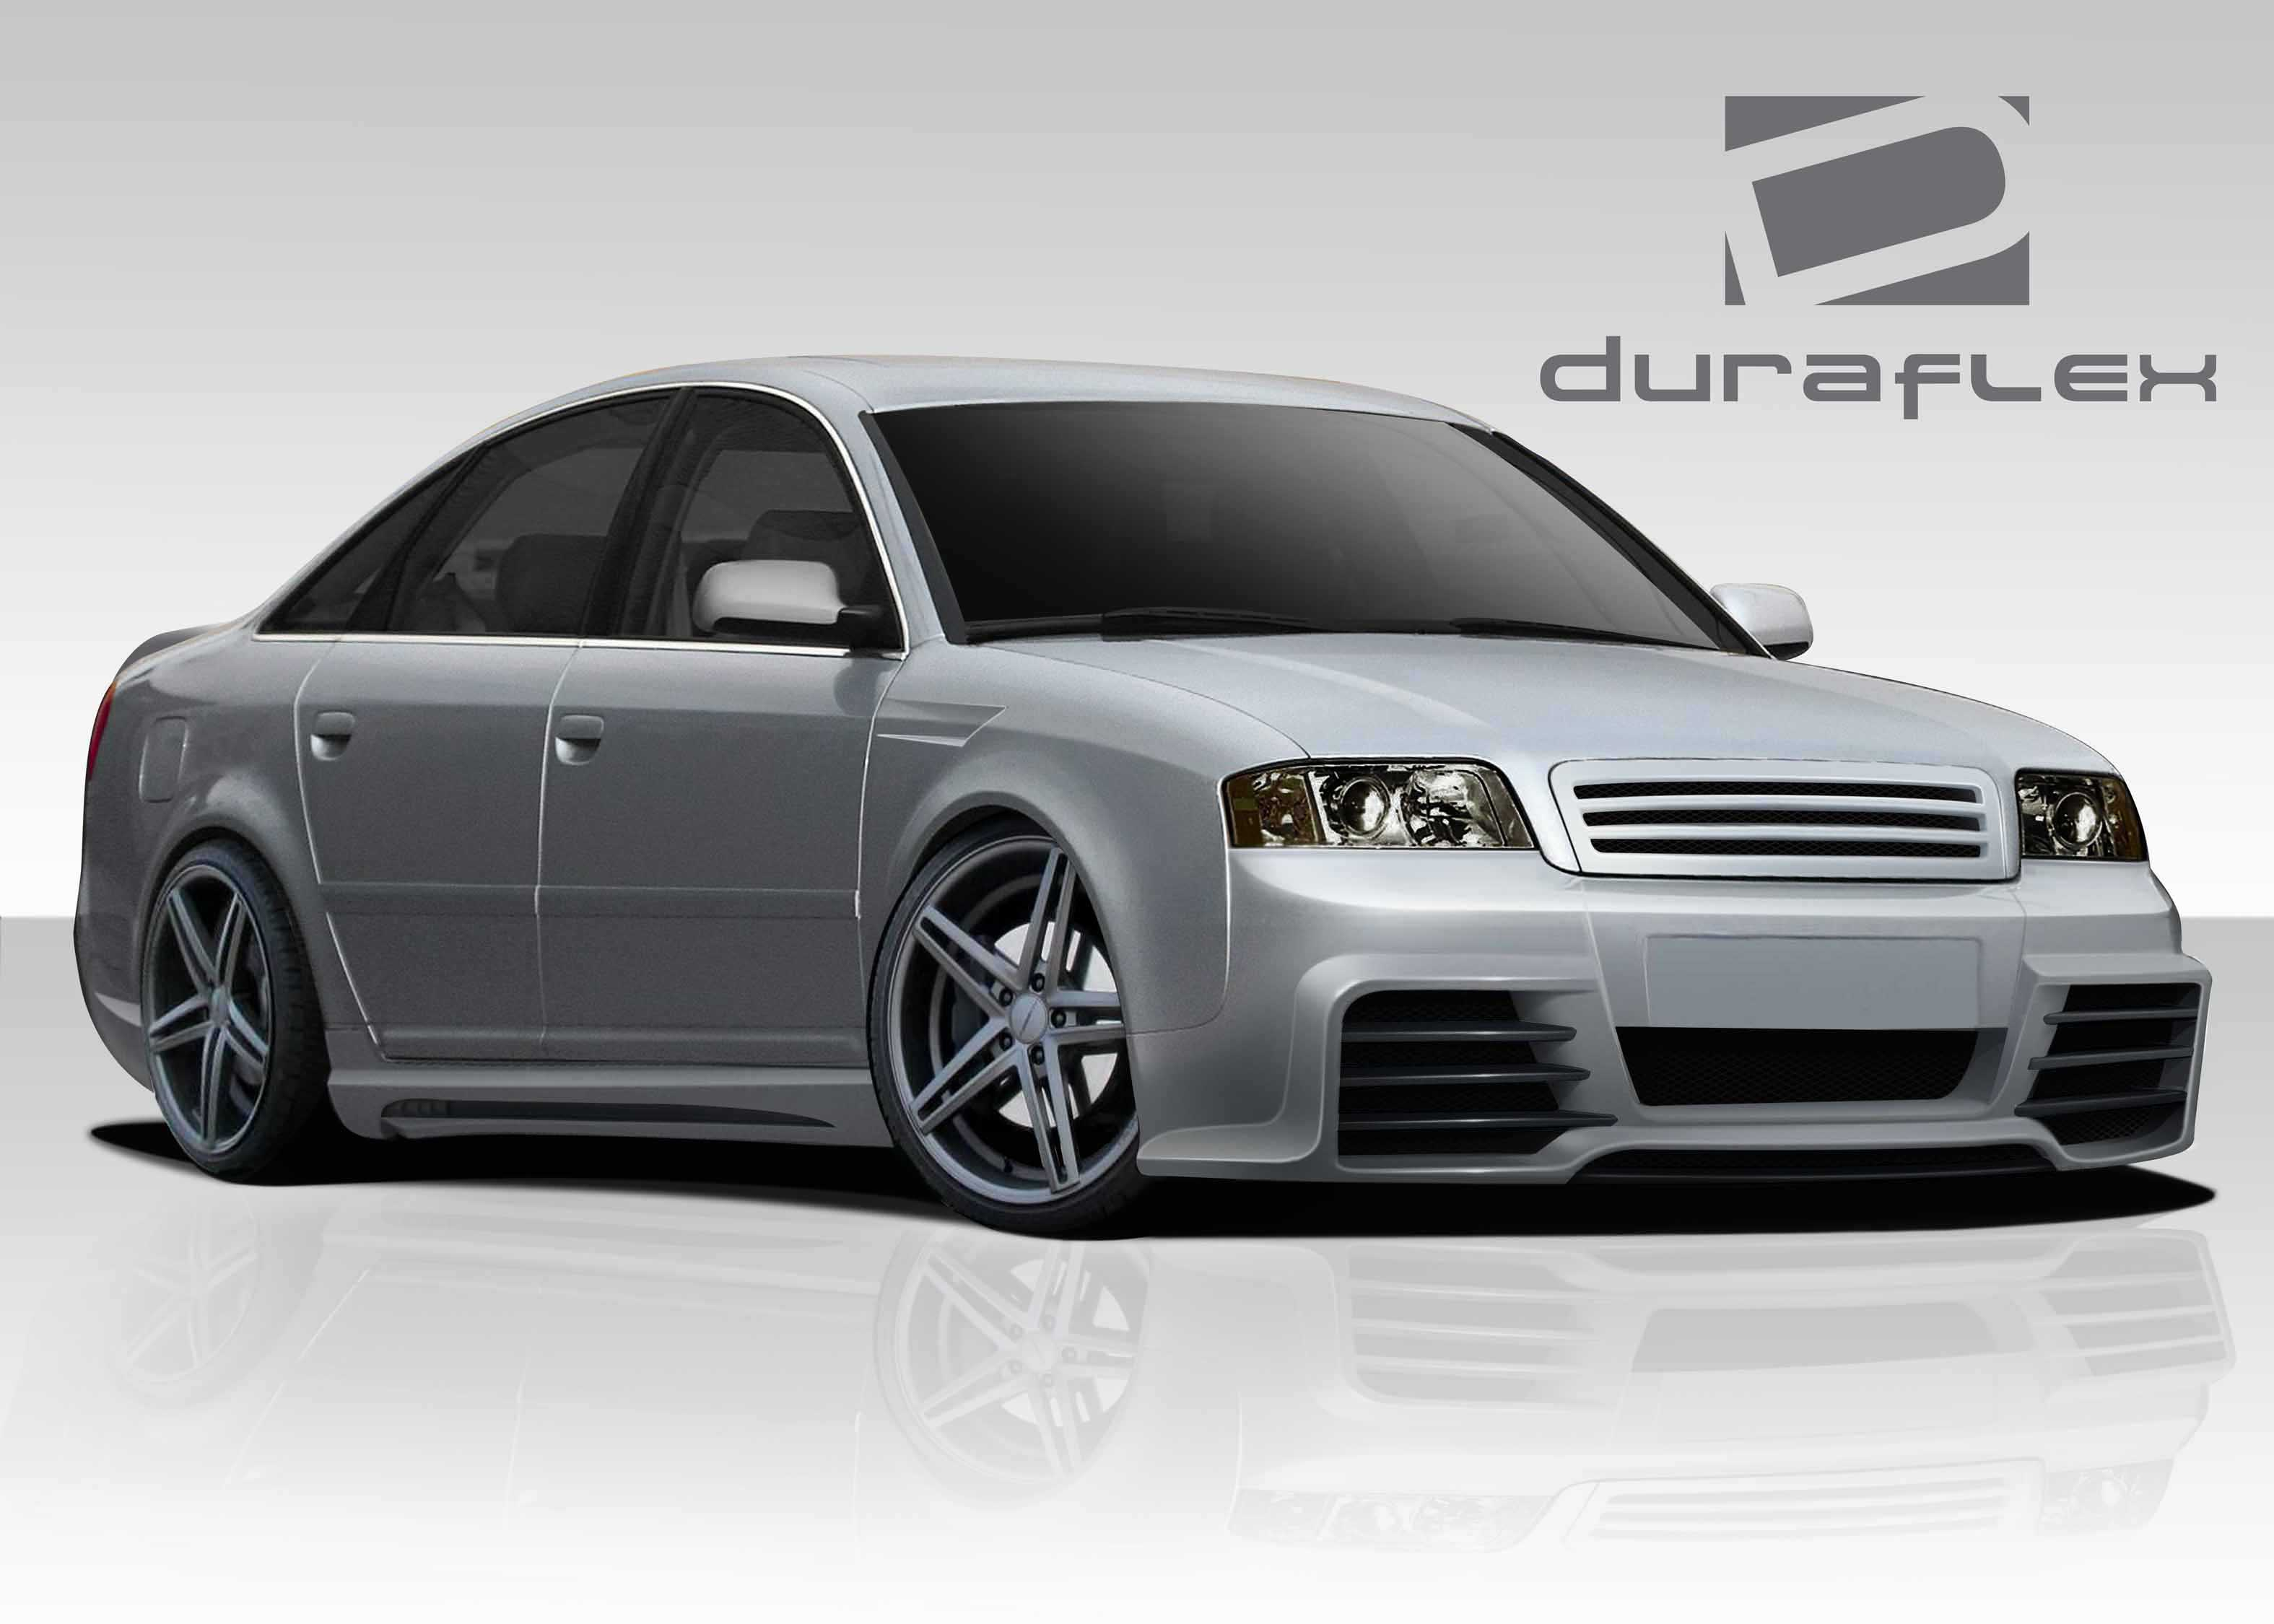 welcome to extreme dimensions item group 1998 2004 audi a6 s6 4dr wagon duraflex ct r body. Black Bedroom Furniture Sets. Home Design Ideas